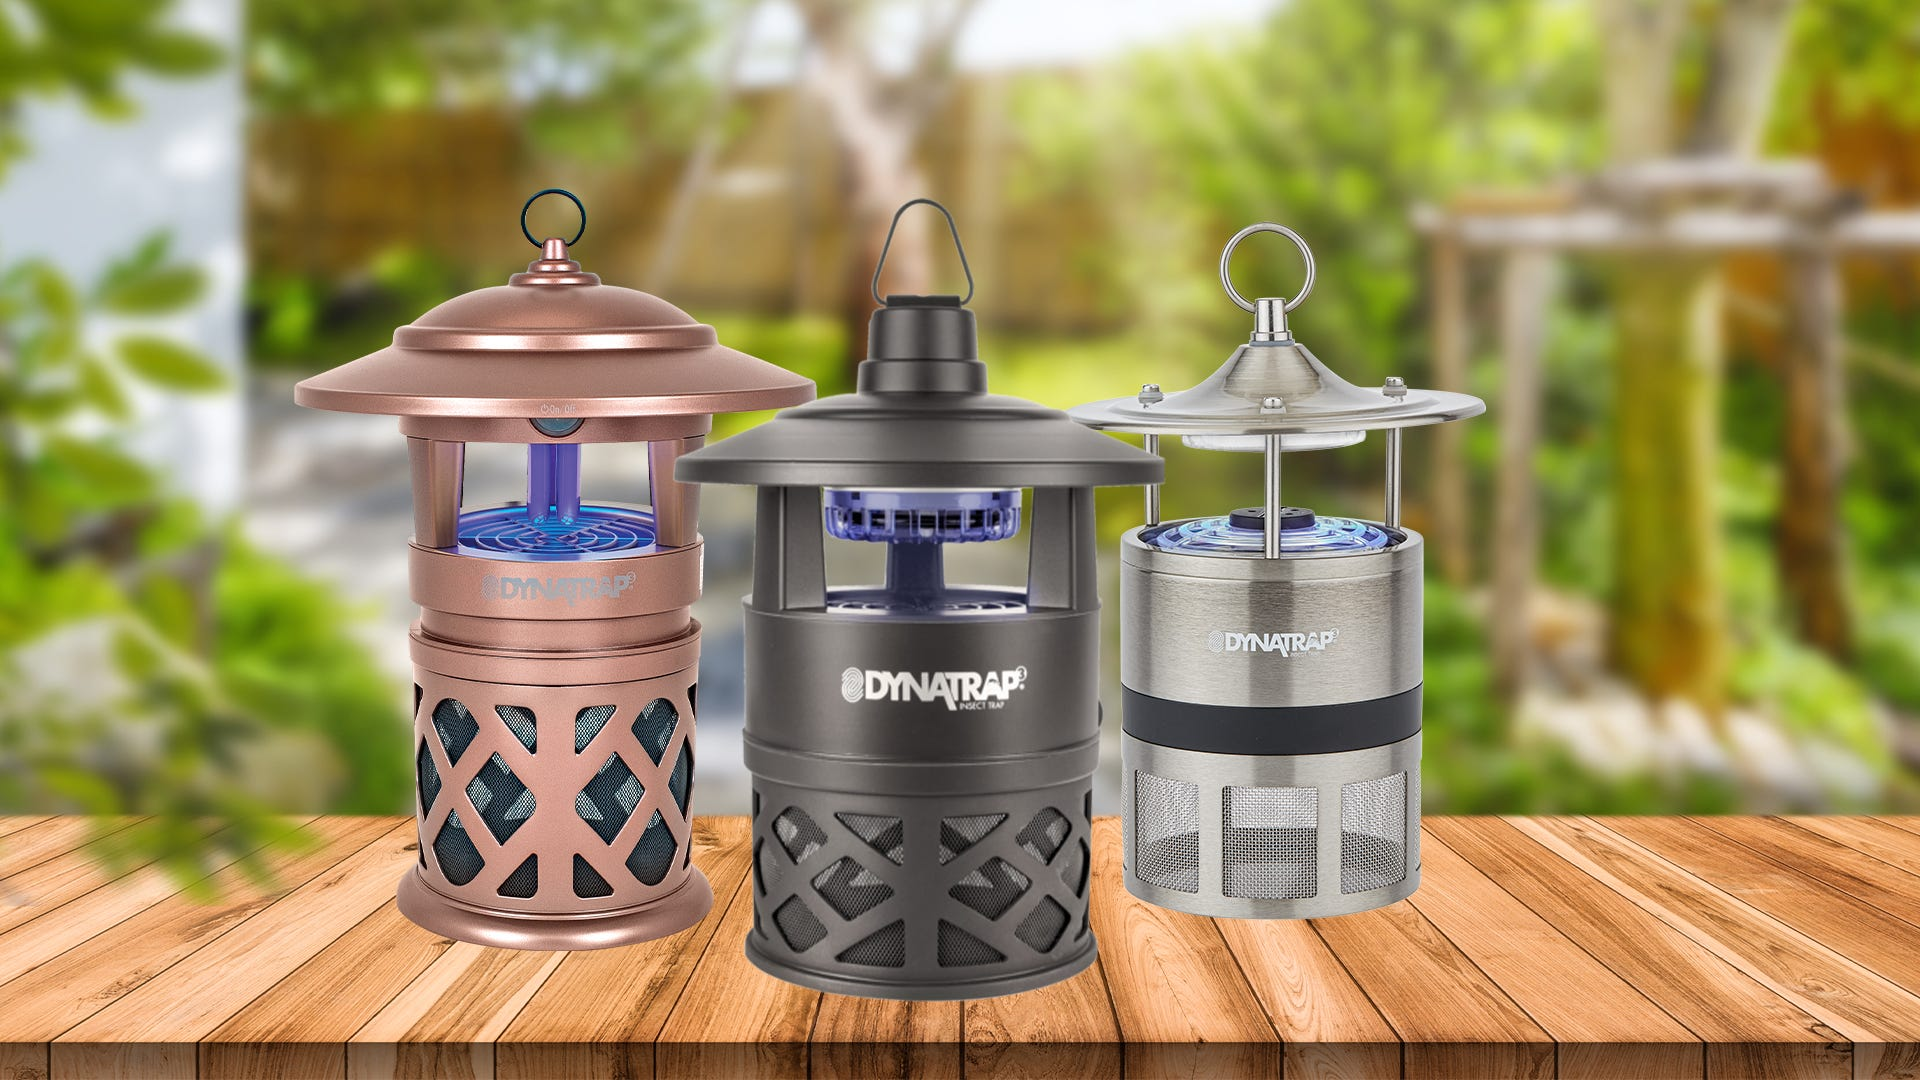 Setting up your DynaTrap Mosquito Trap